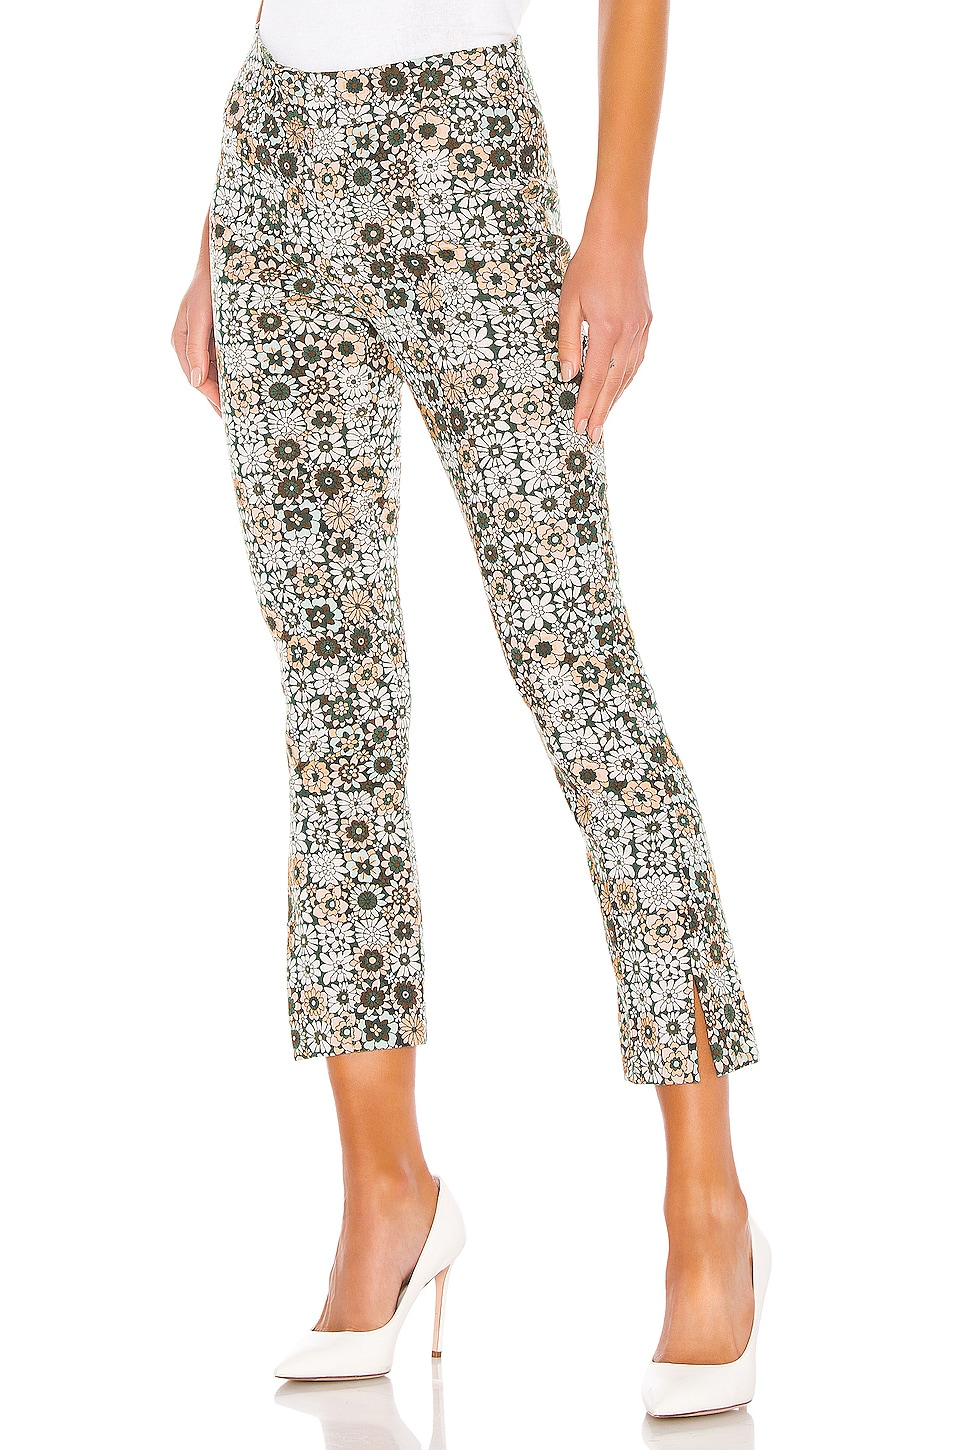 Smythe Stovepipe Pant in Graphic Floral